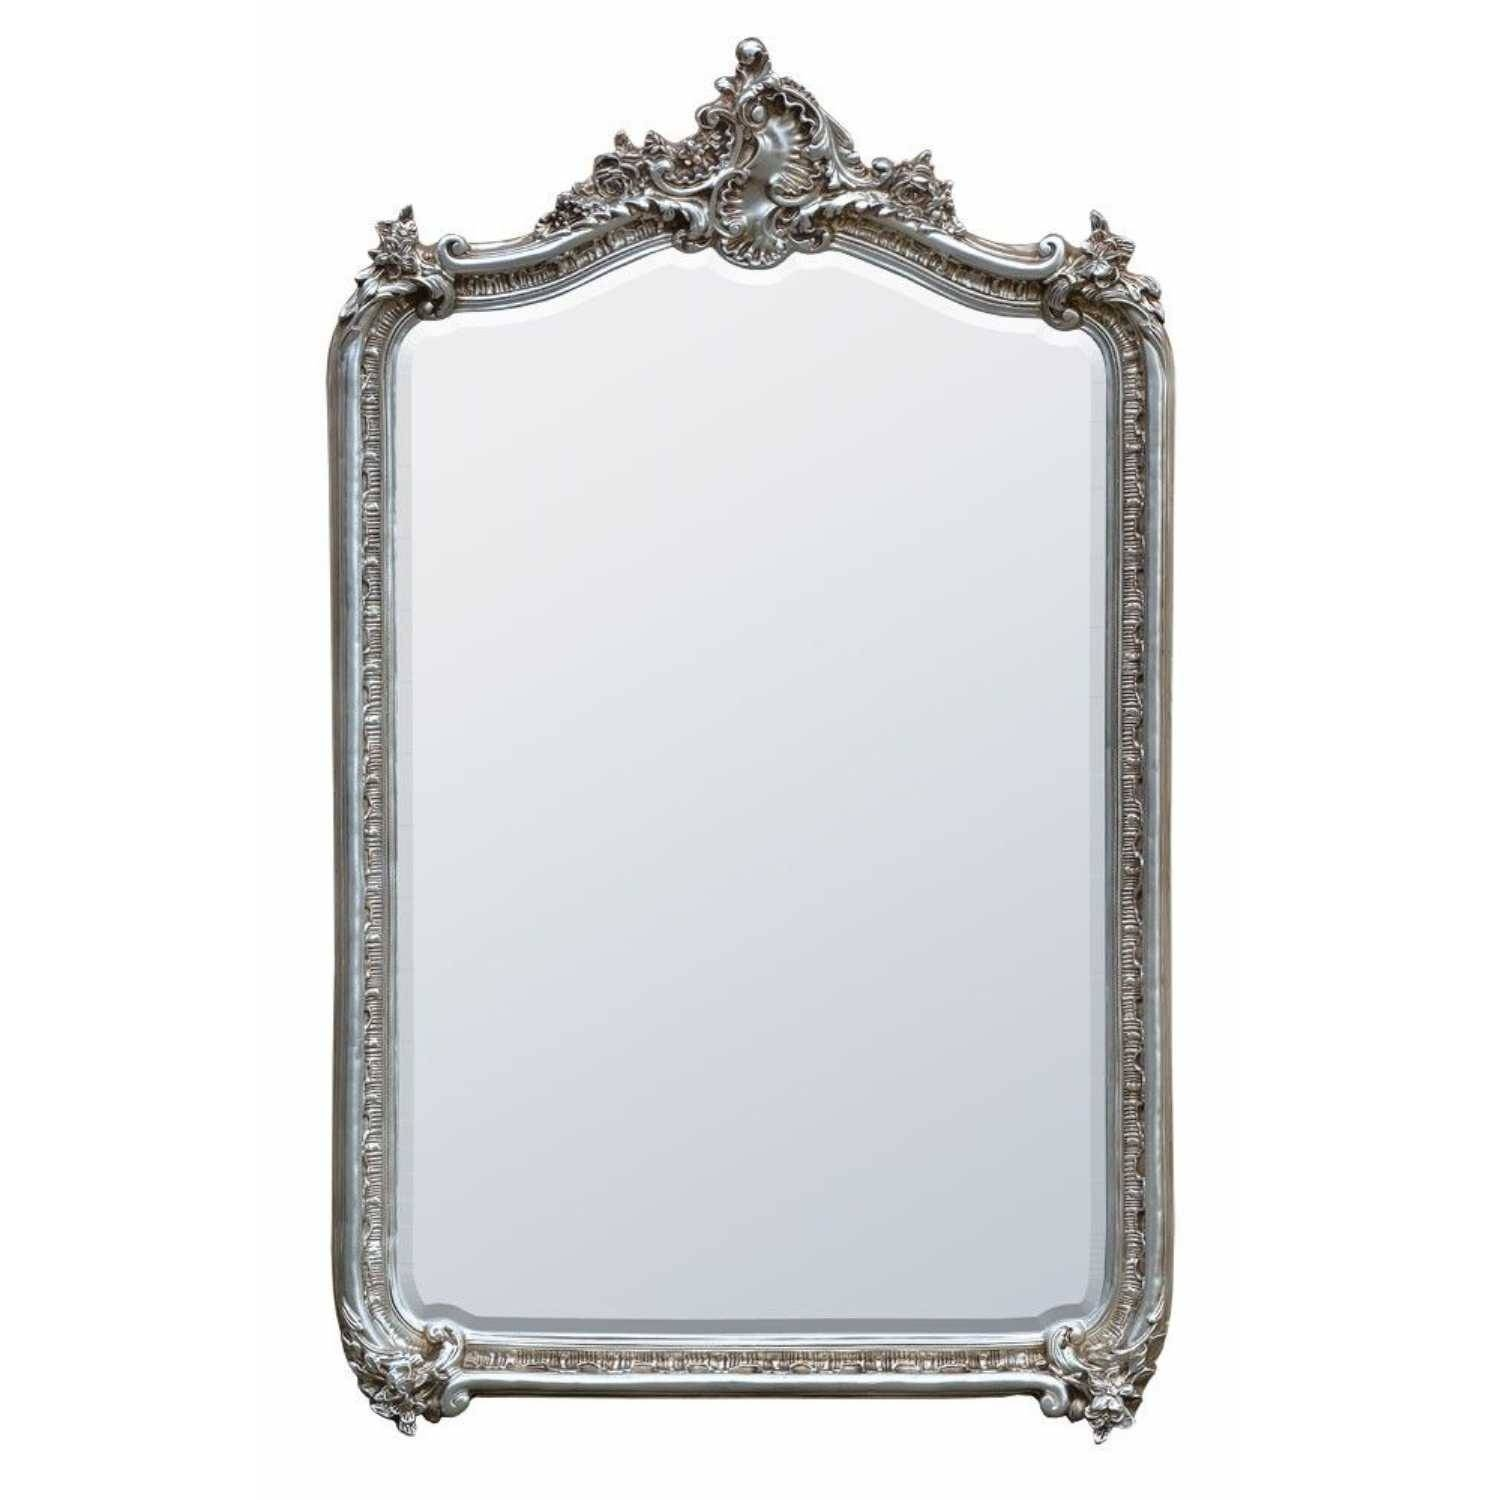 French Louis Silver Bevelled Mirror Intended For Silver Bevelled Mirrors (View 15 of 25)